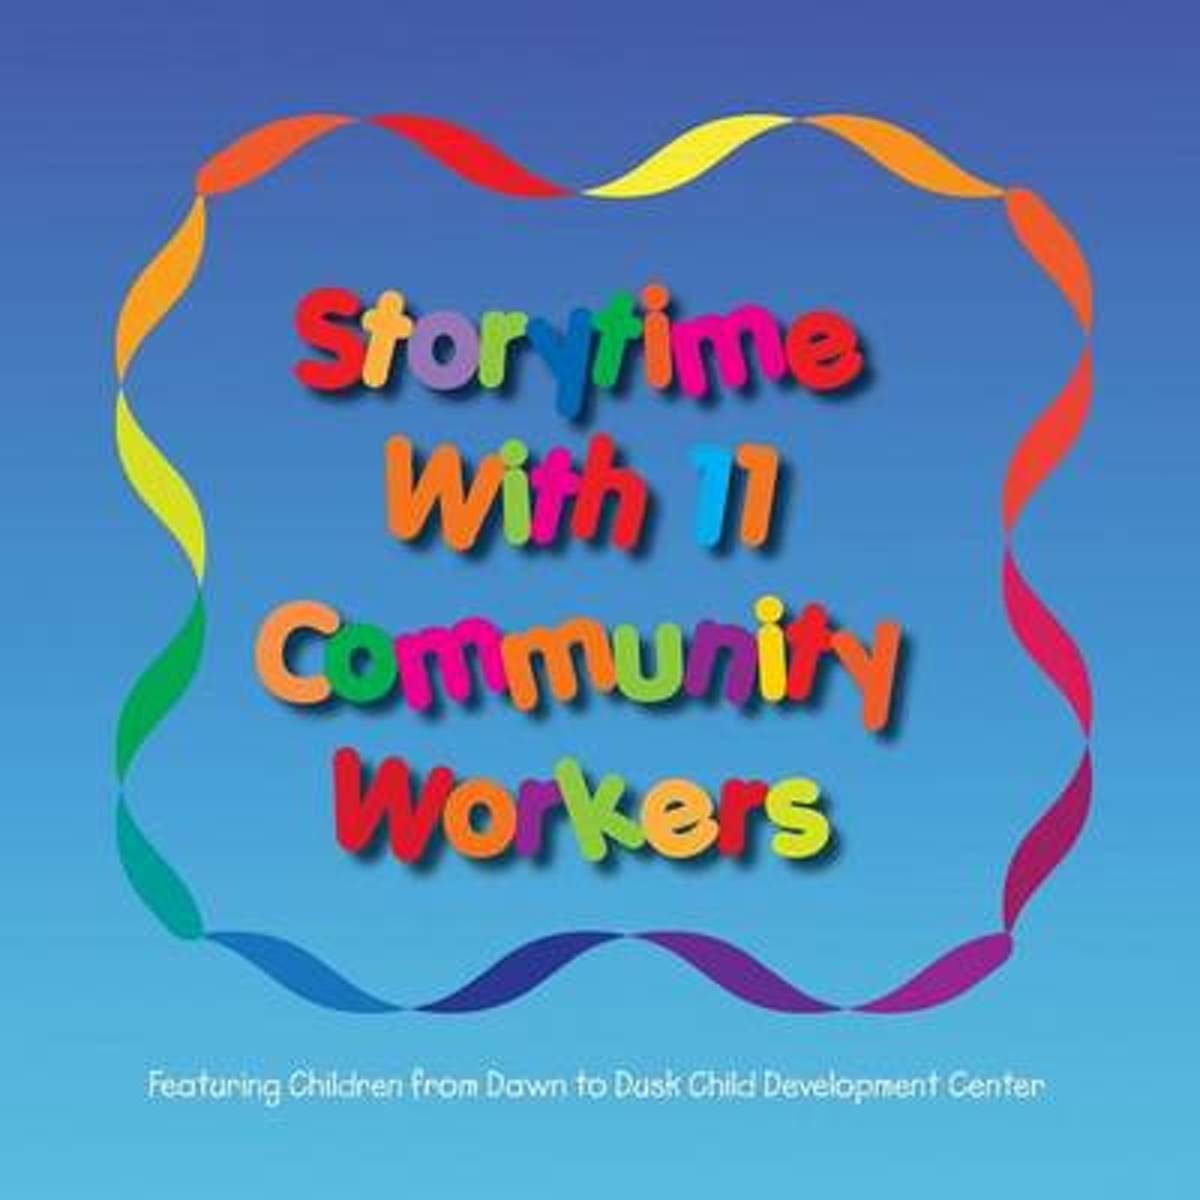 Storytime with 11 Community Workers